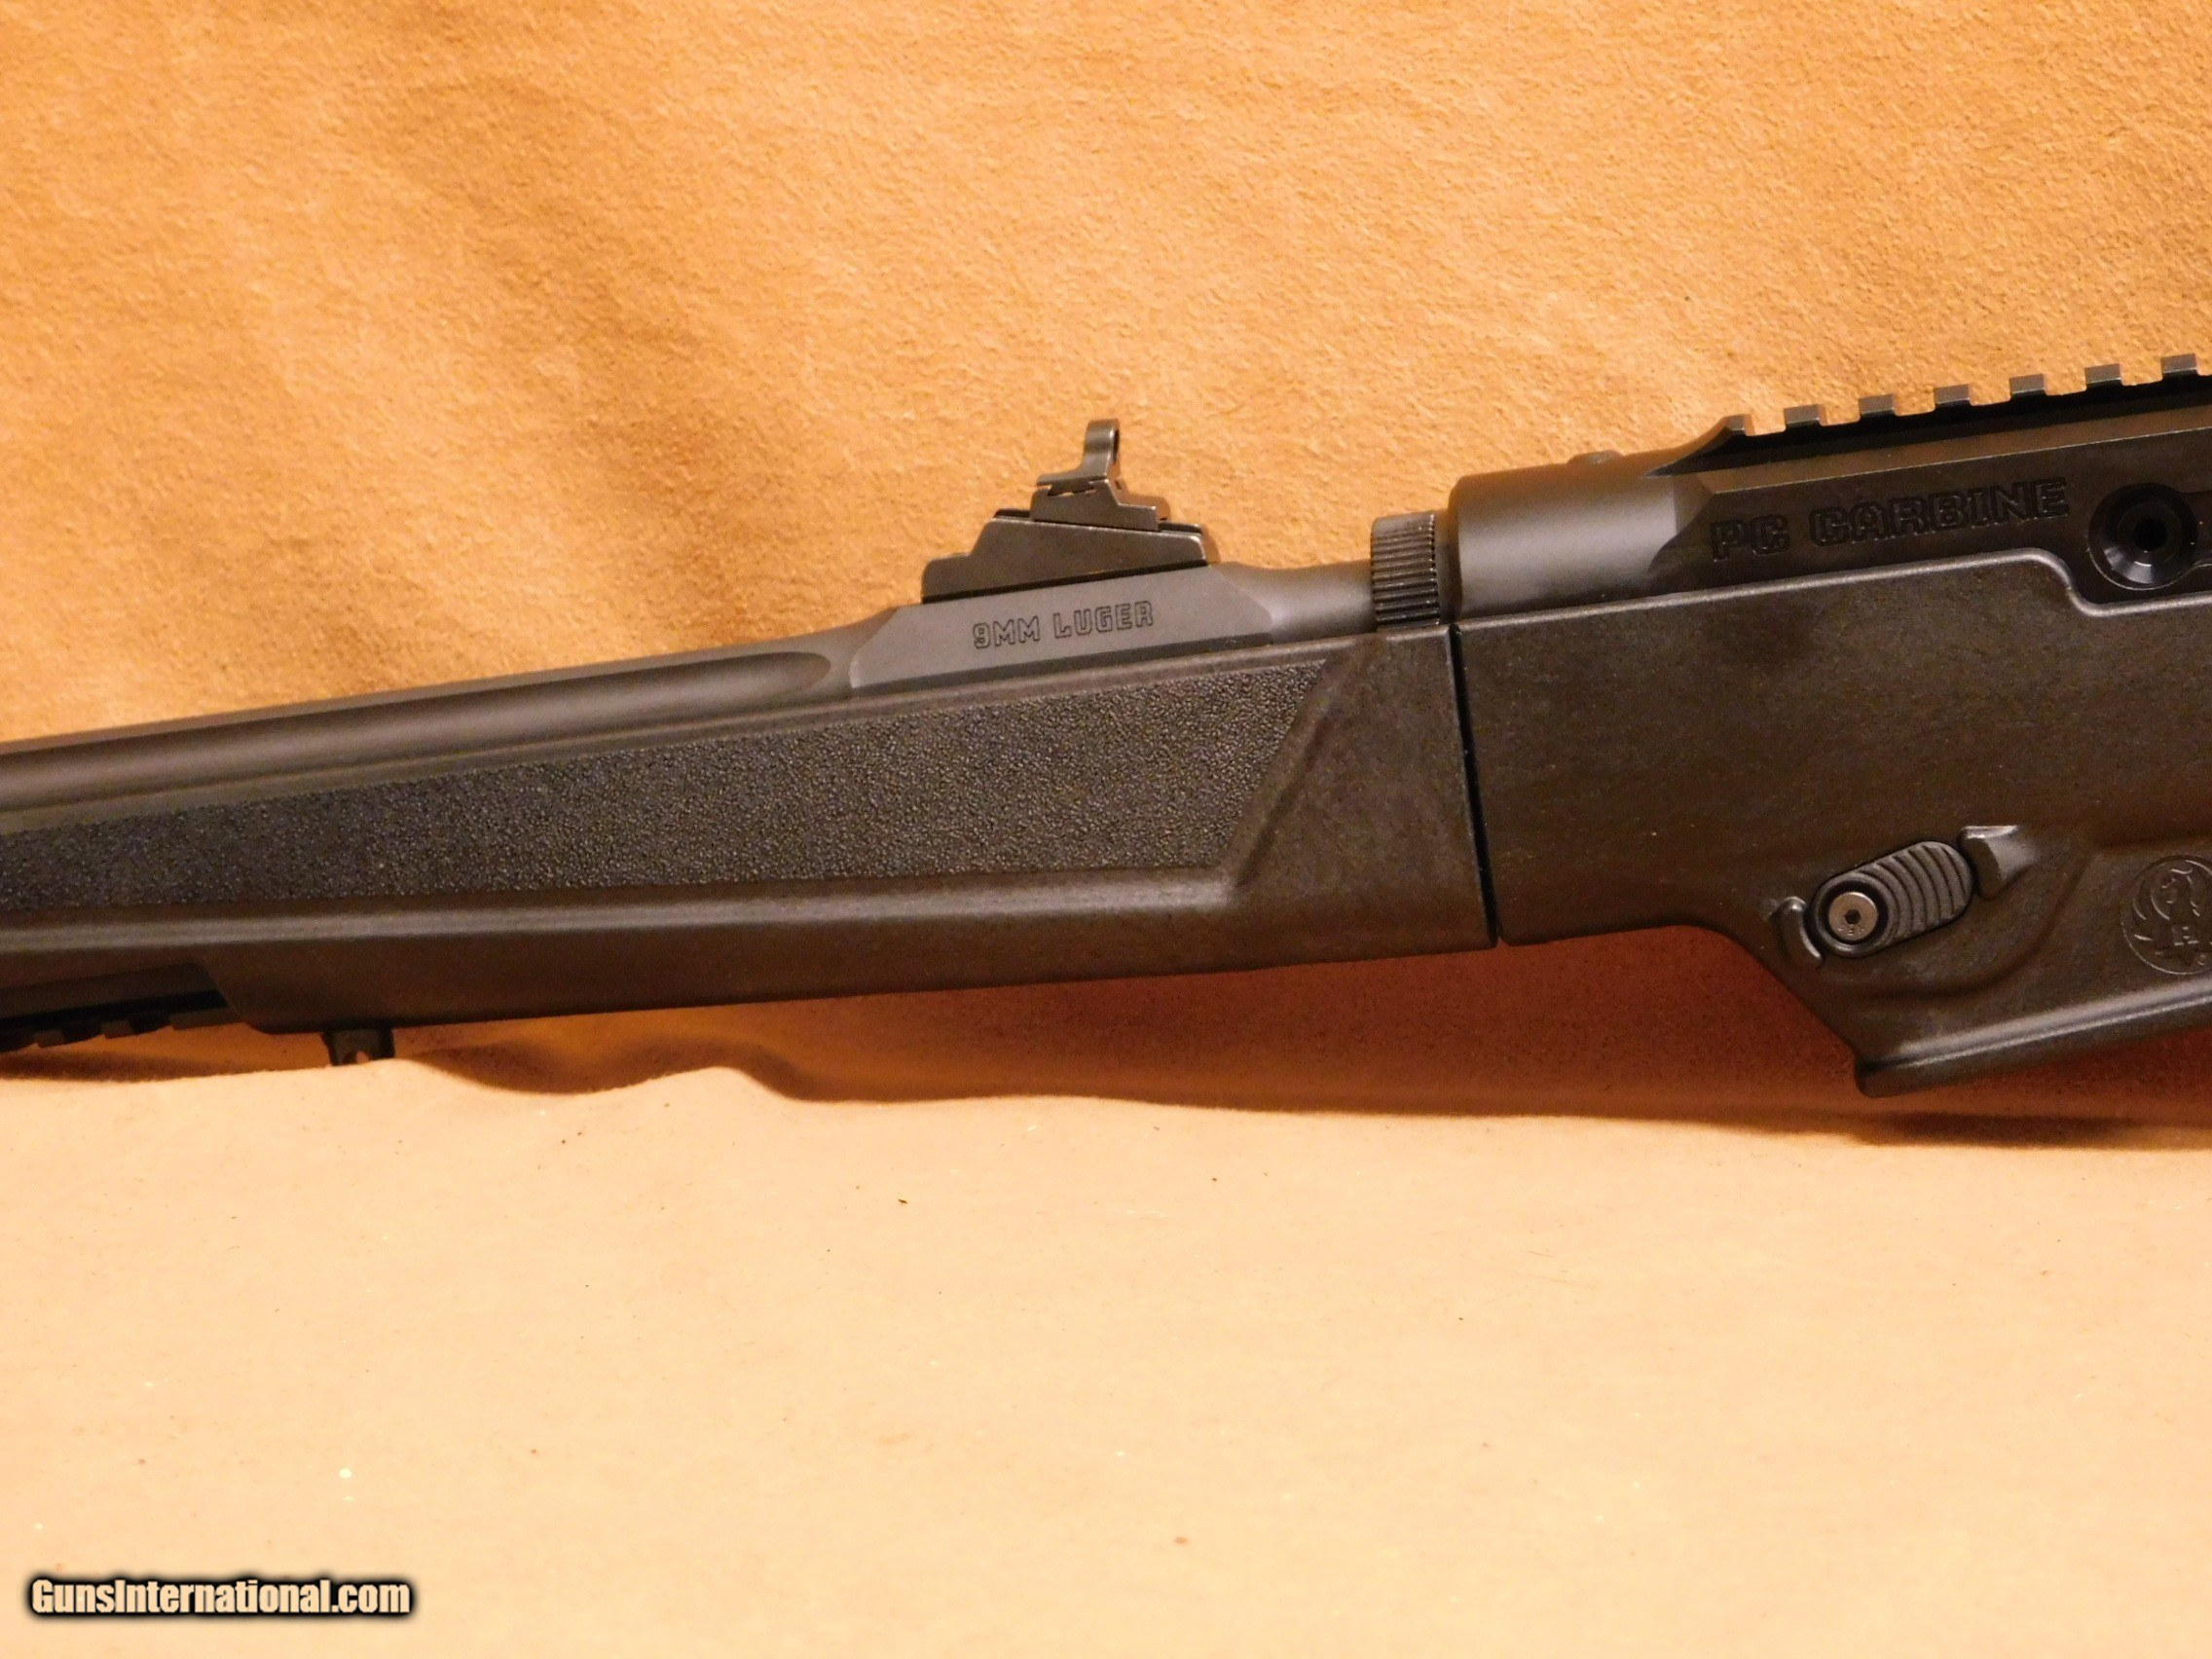 Ruger PC Carbine (Fluted, Threaded, Glock Mags)